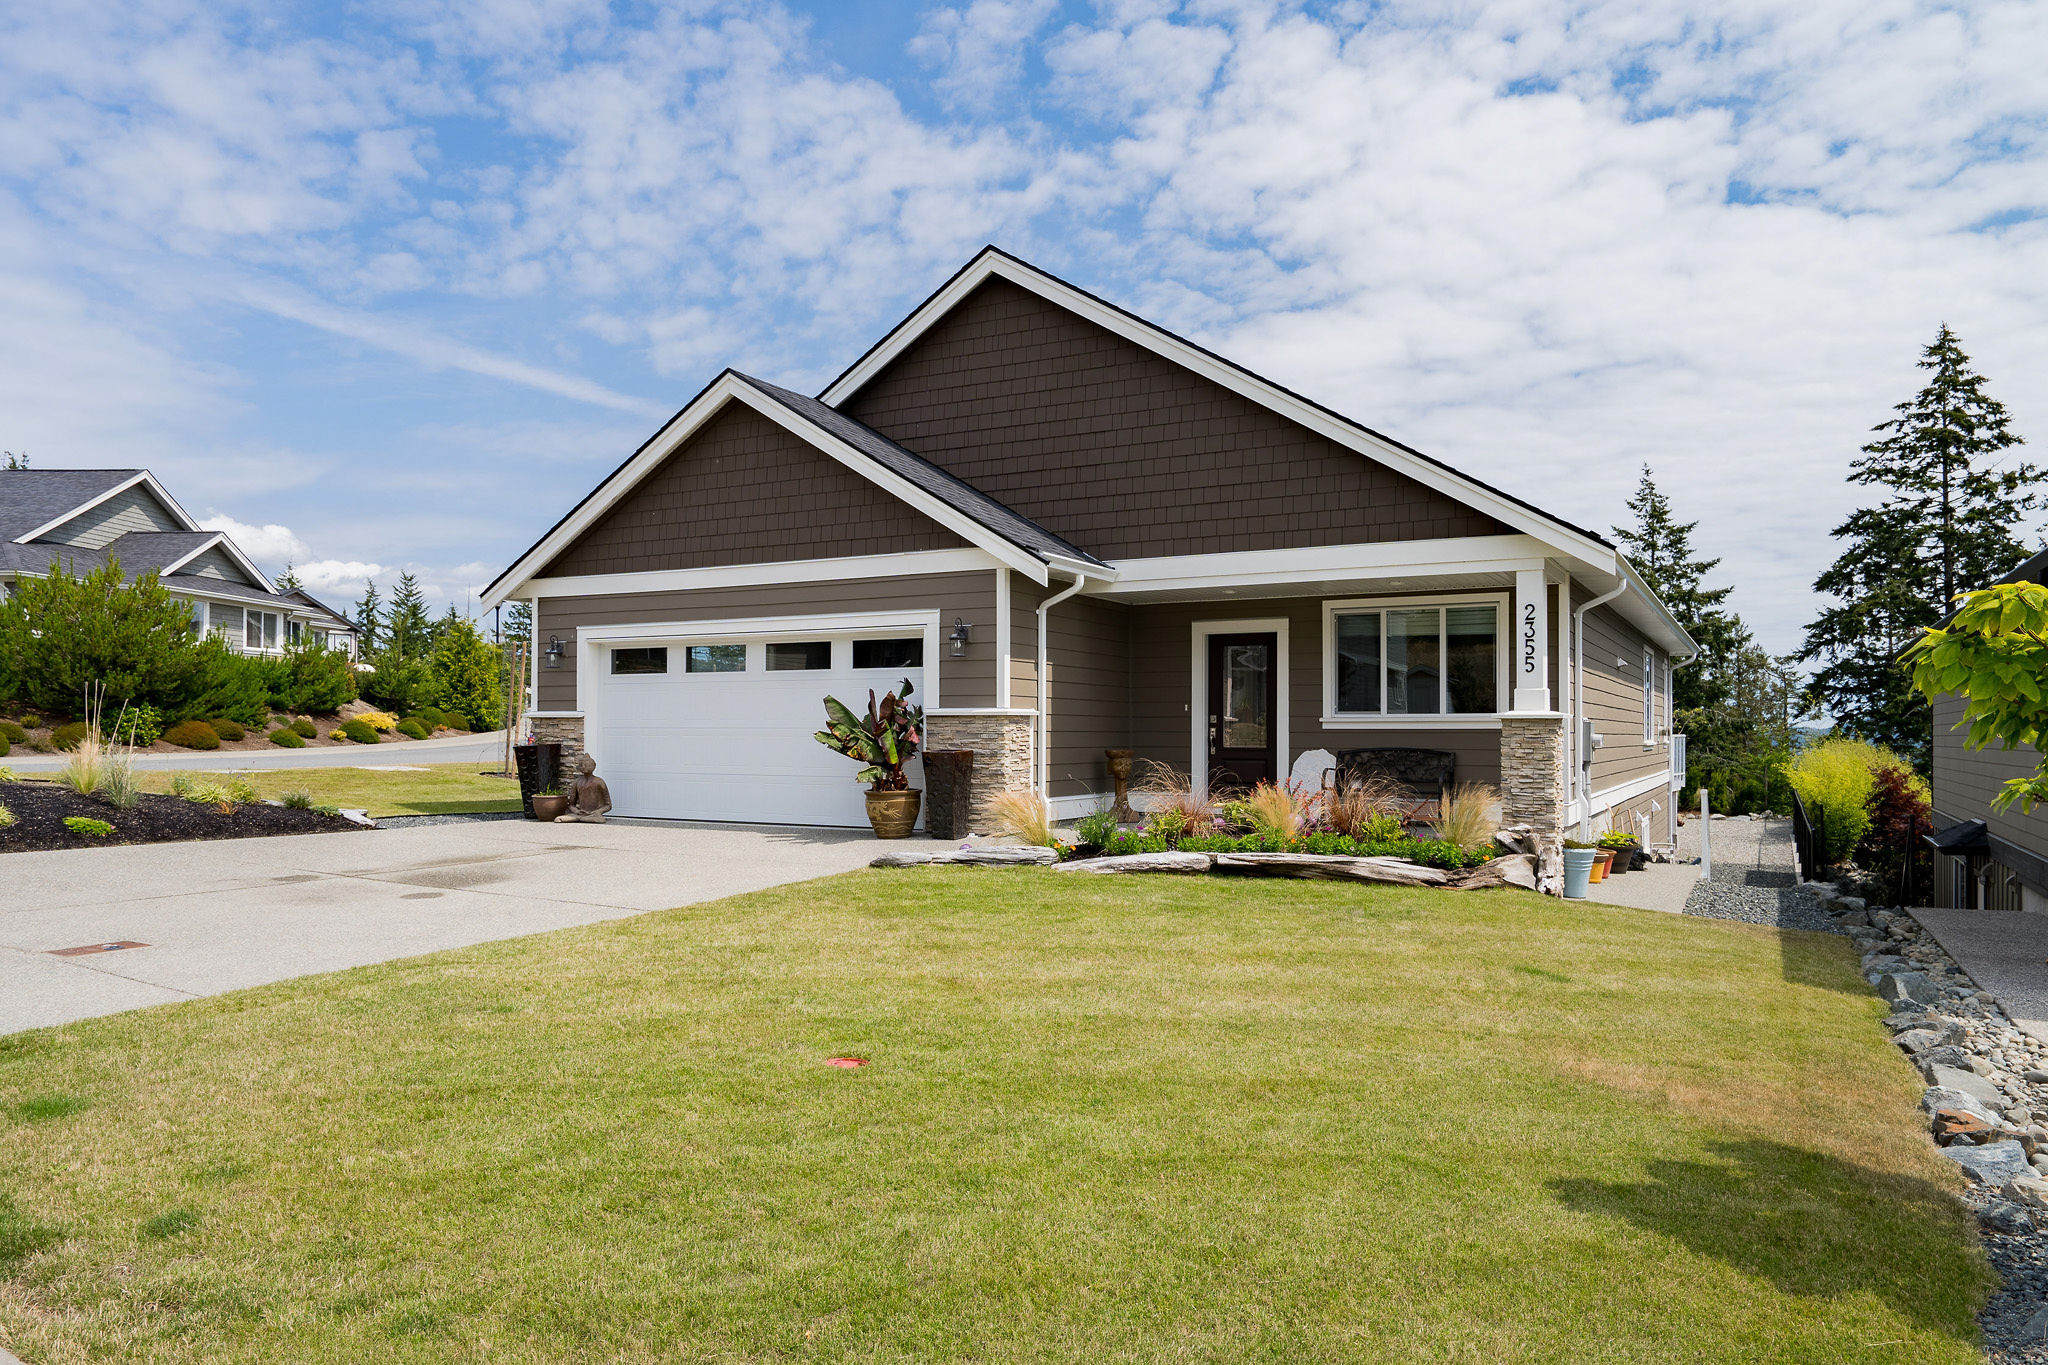 Gorgeous One-Level Ocean View Nearly-new Home in Stone Ridge Estates, Sooke!